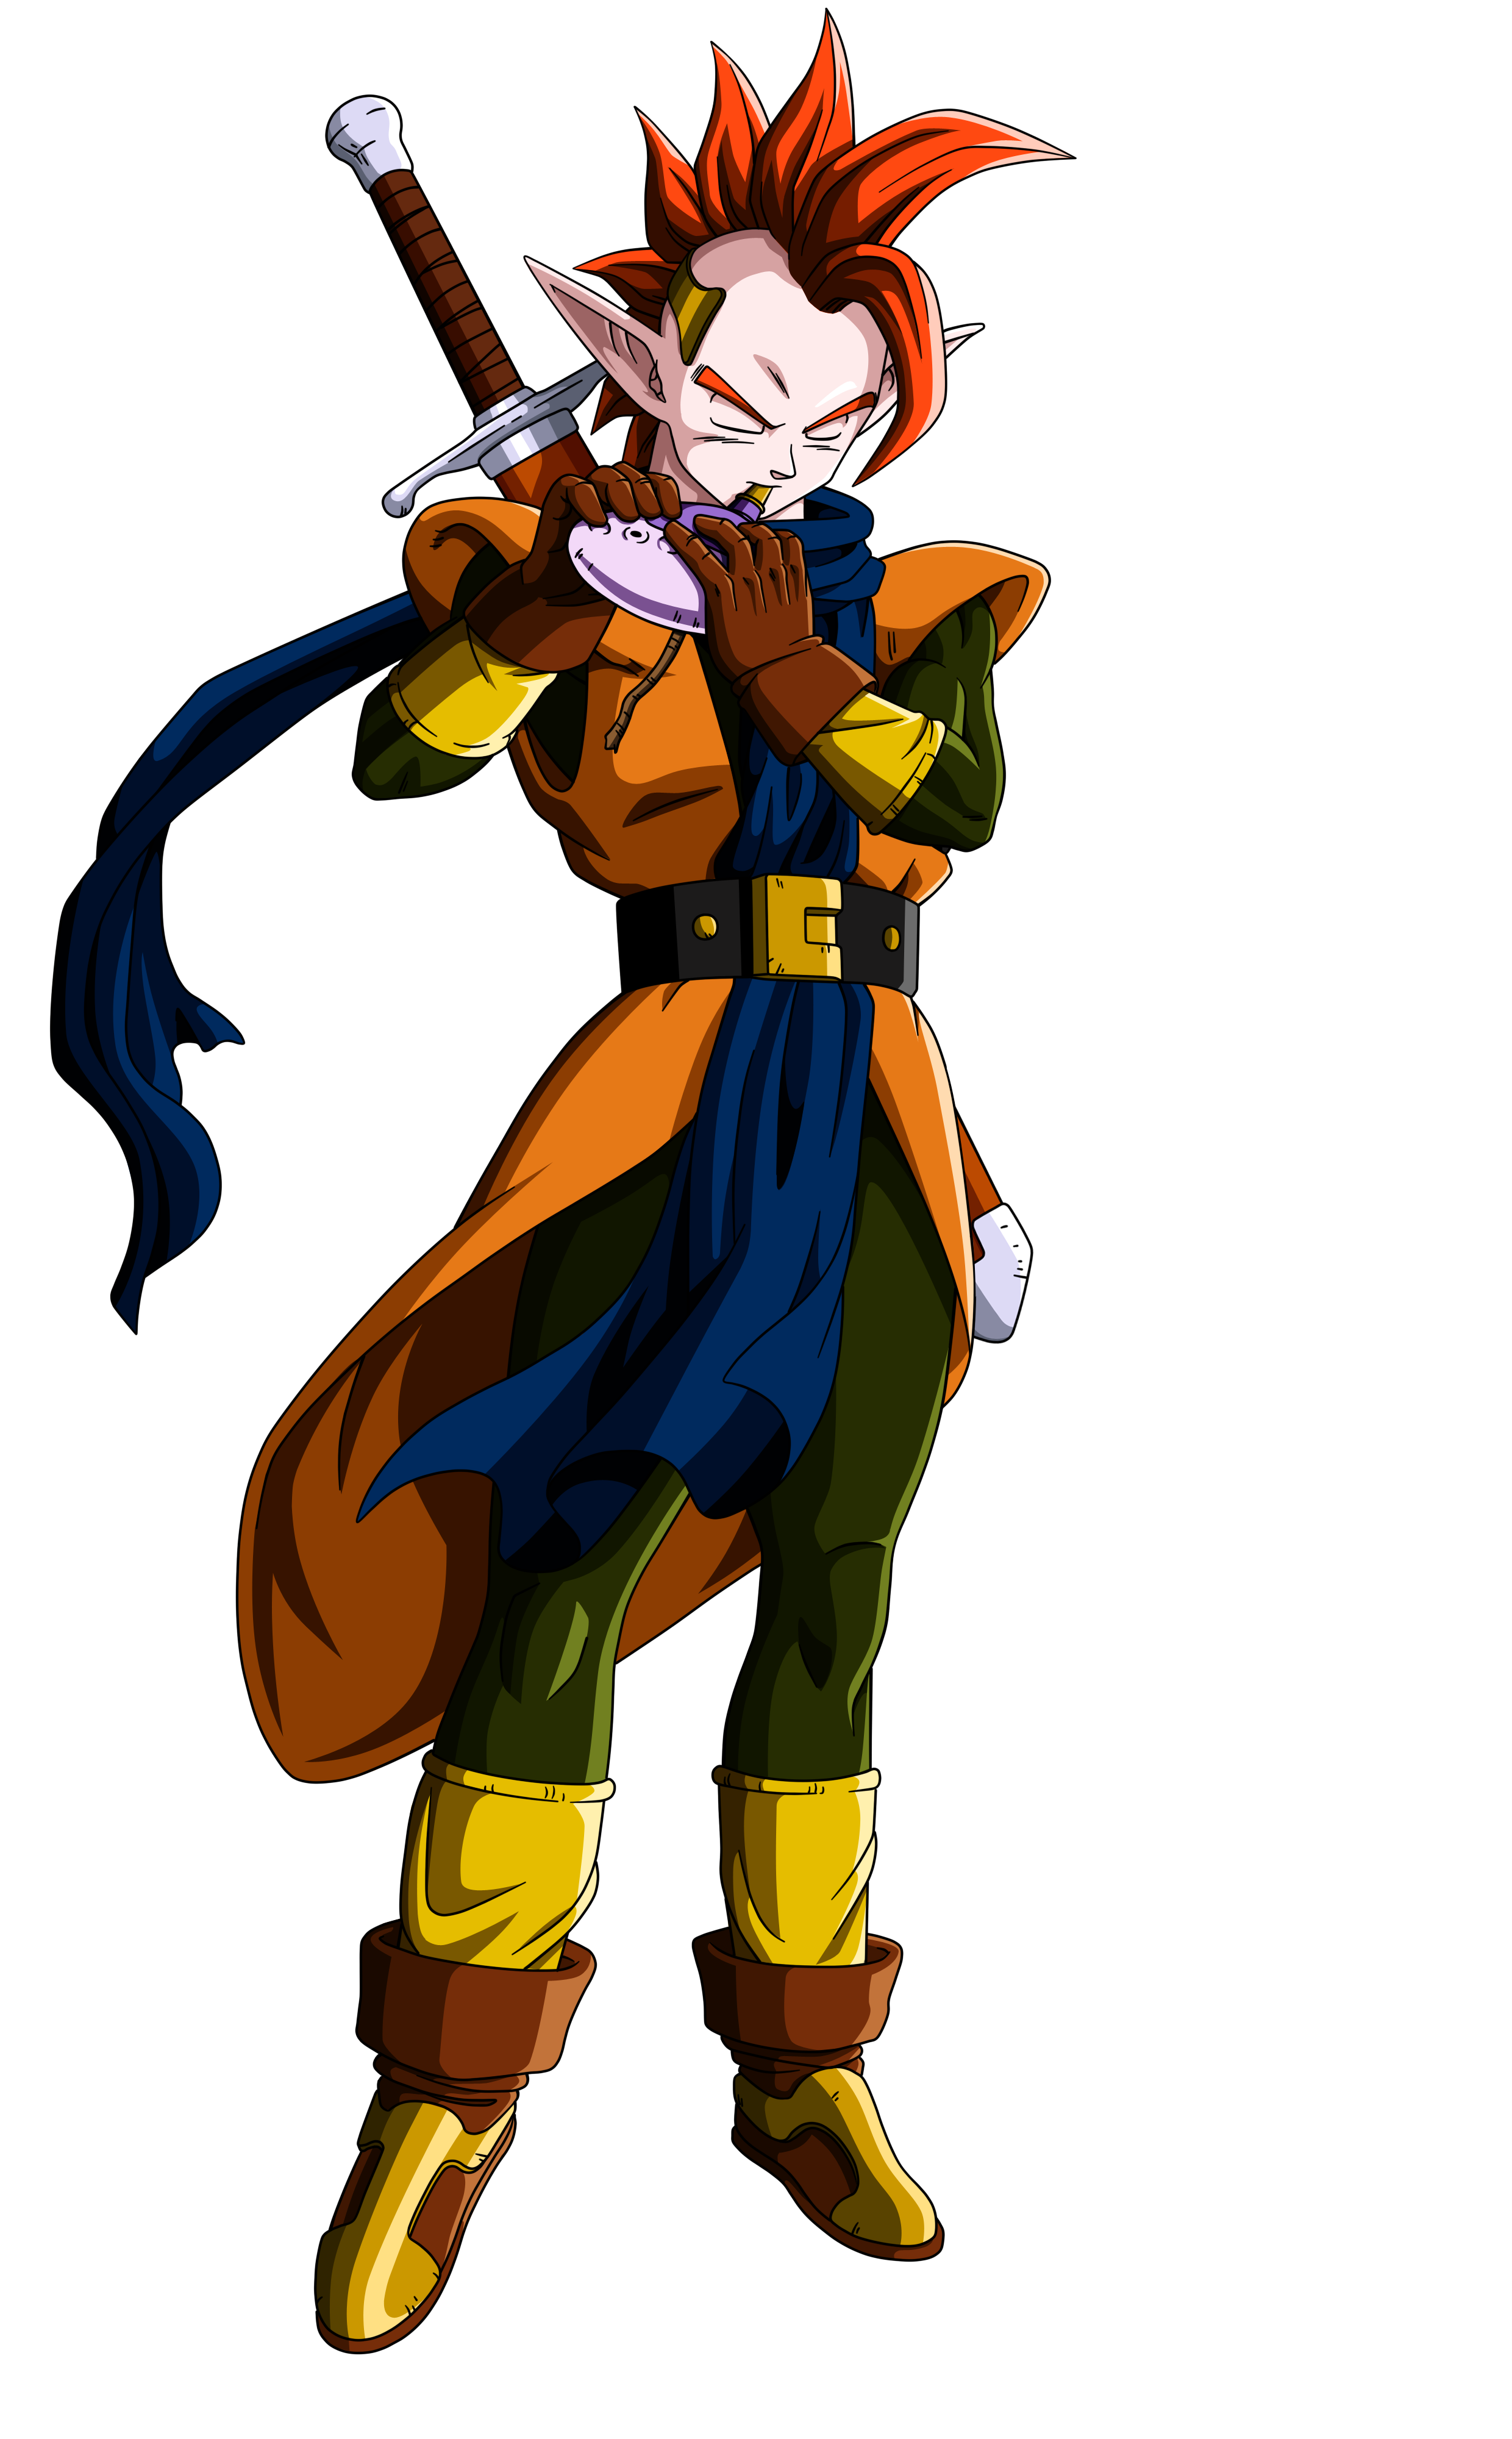 Tapion_dragon_ball_z_by_orco05-d4u7jtq